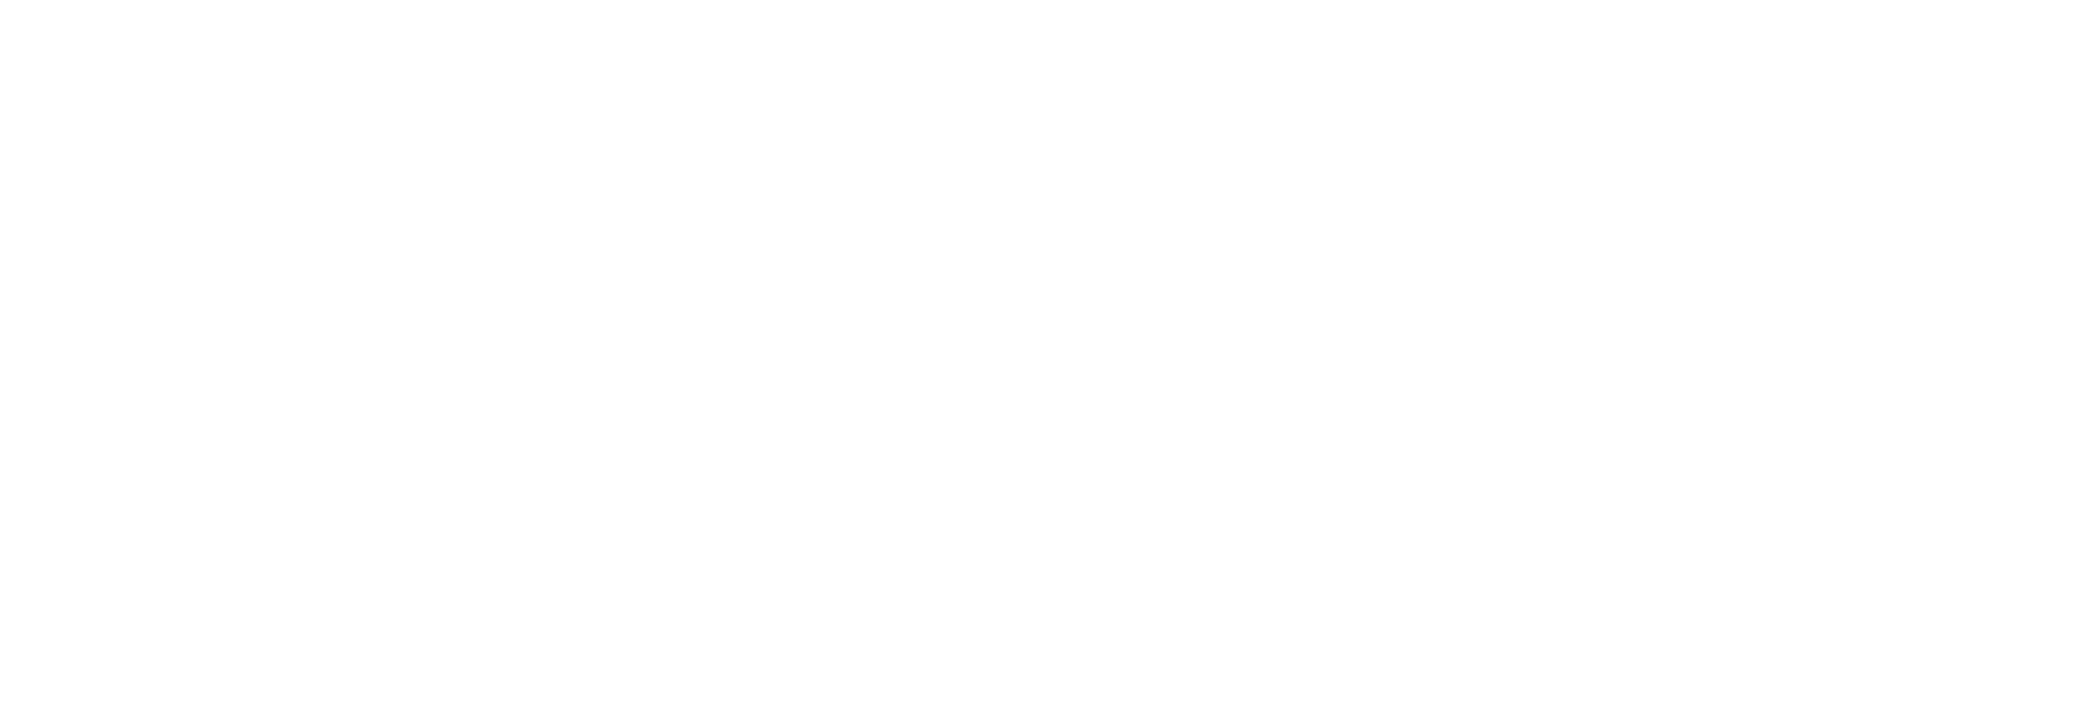 PFP Fire Alarm Systems White.png